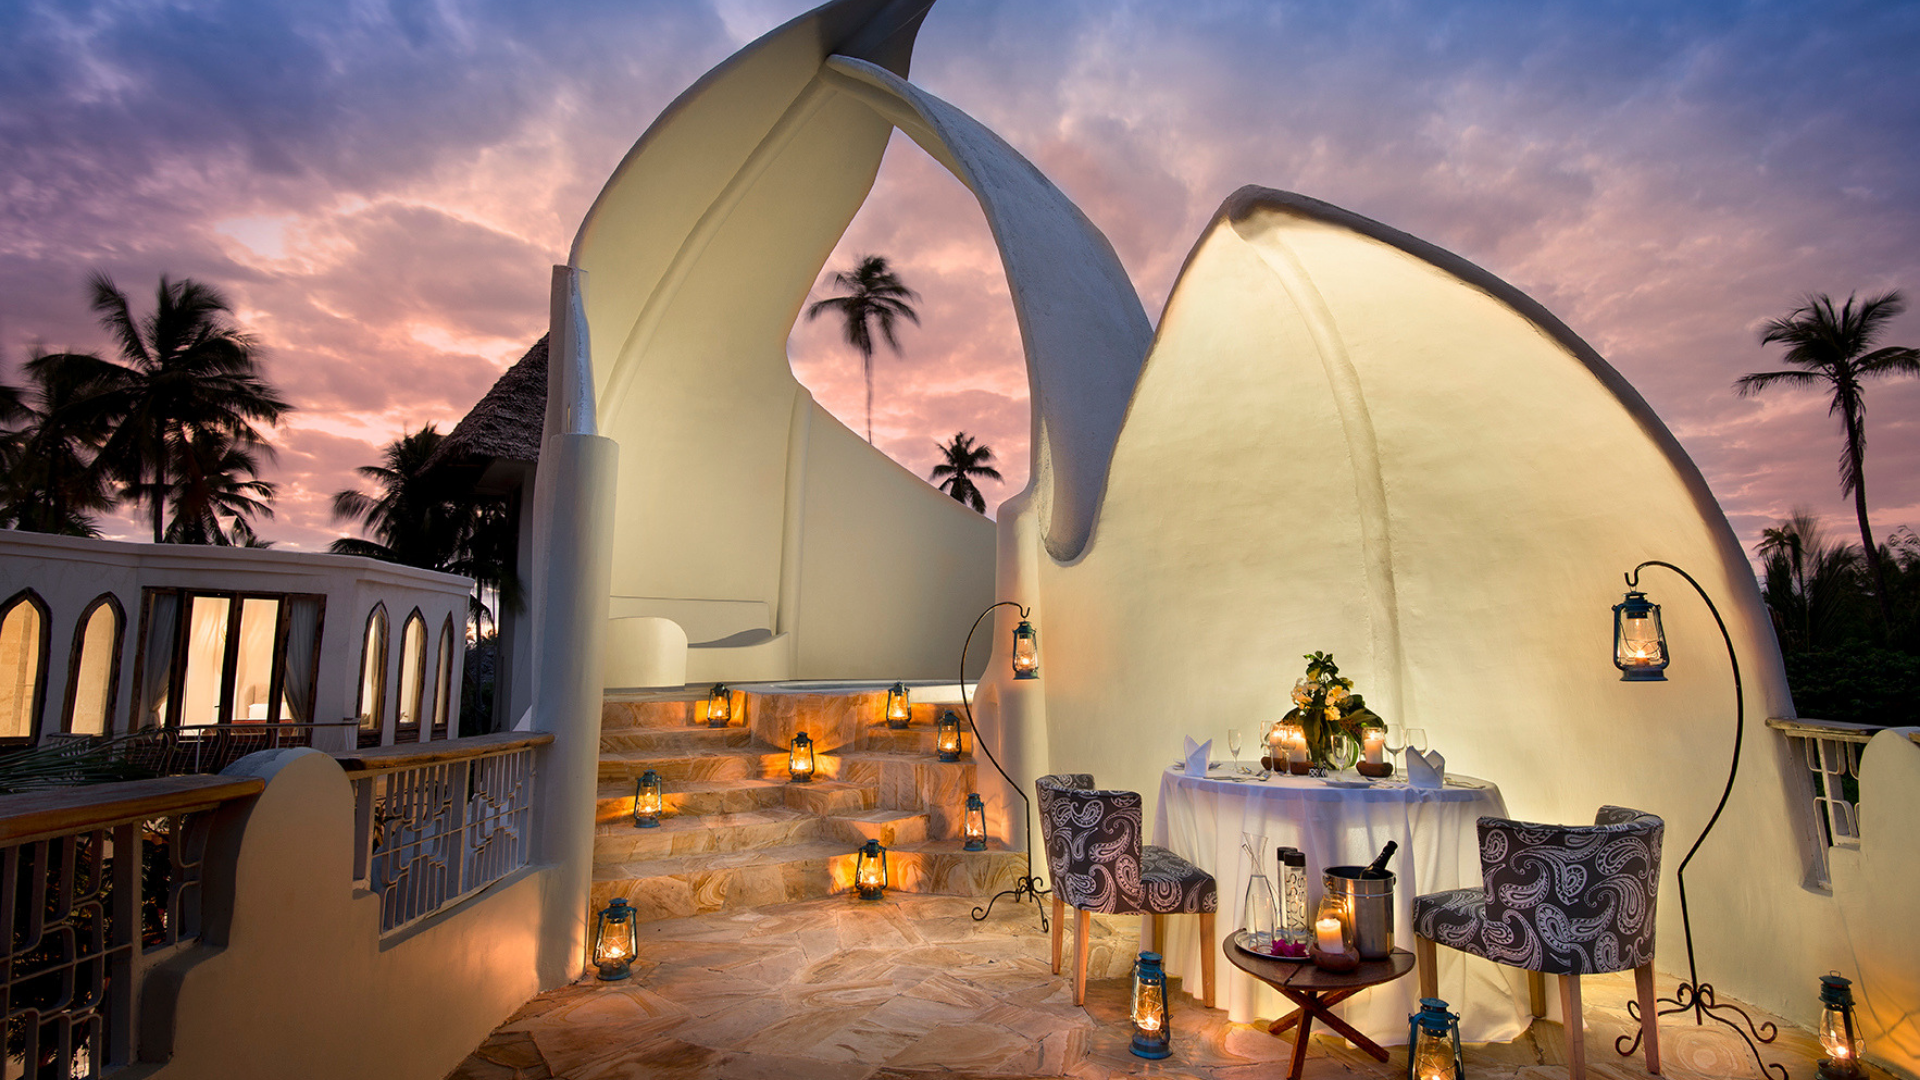 The Escape | Xanadu Villas & Retreat Hotel, Zanzibar, Tanzania